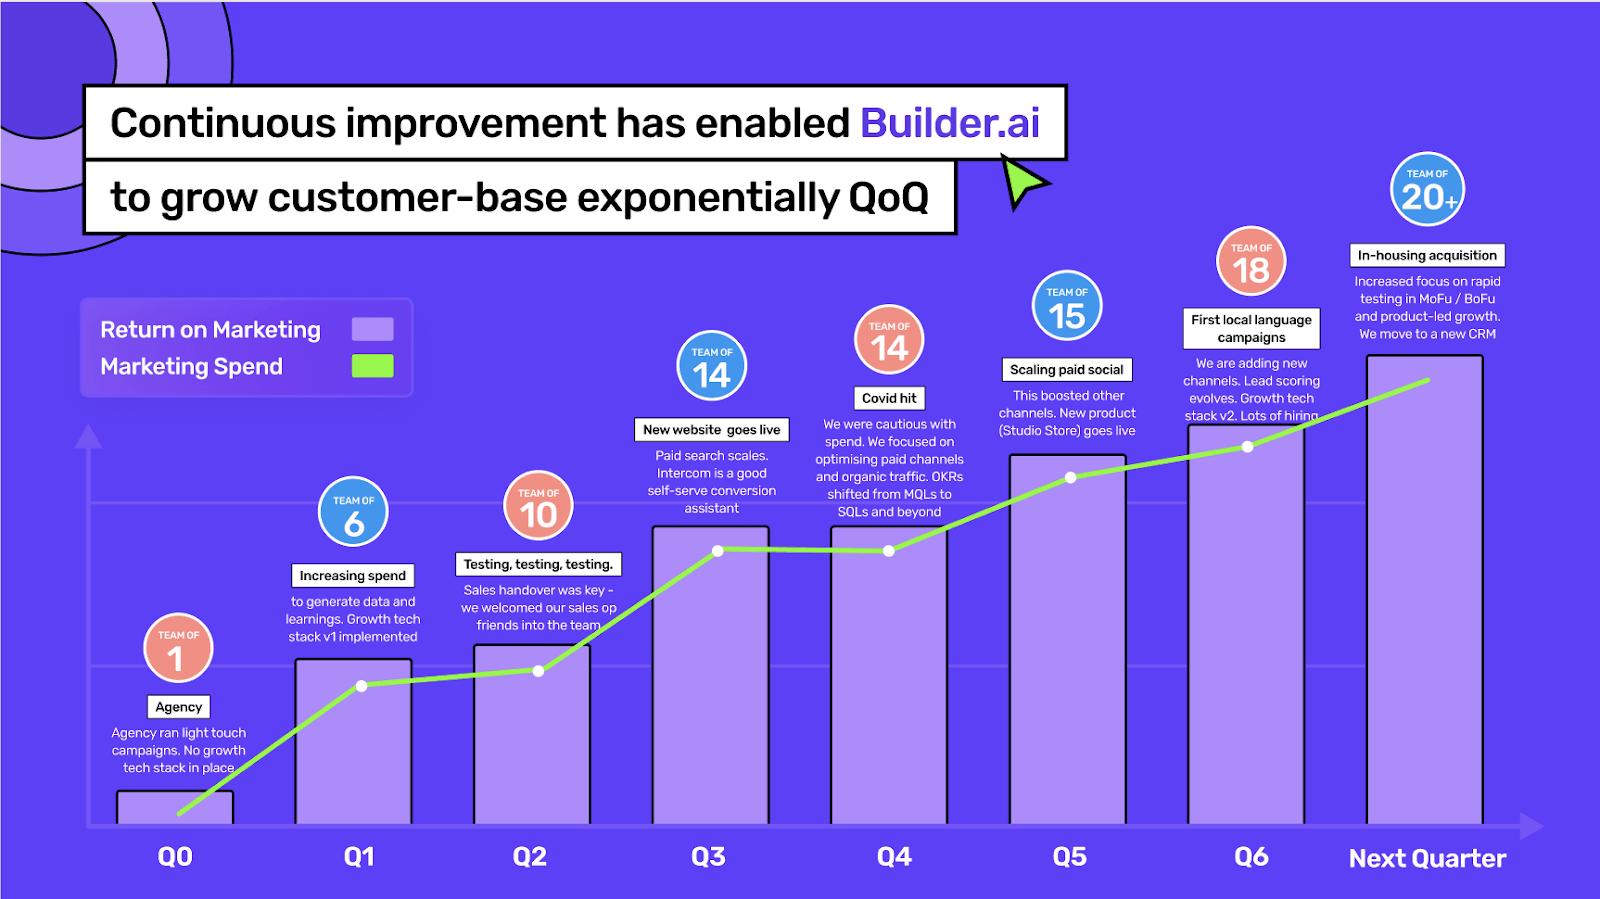 Builder.ai's growth QoQ